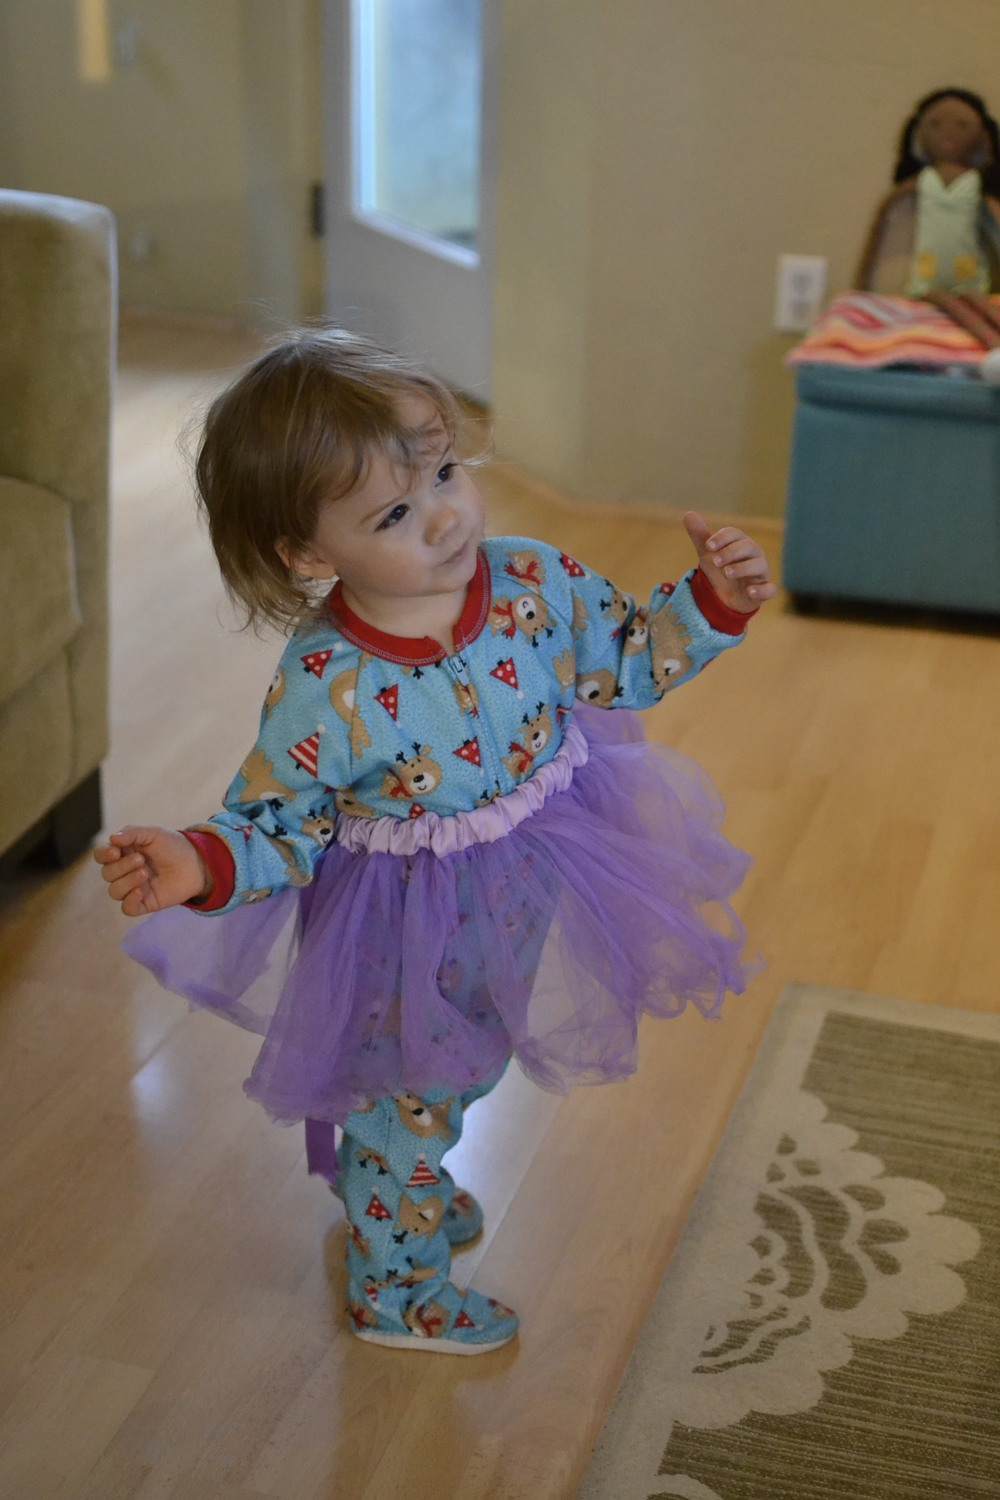 no better way to start the day than with cozy footy pjs and a tutu to dance in.